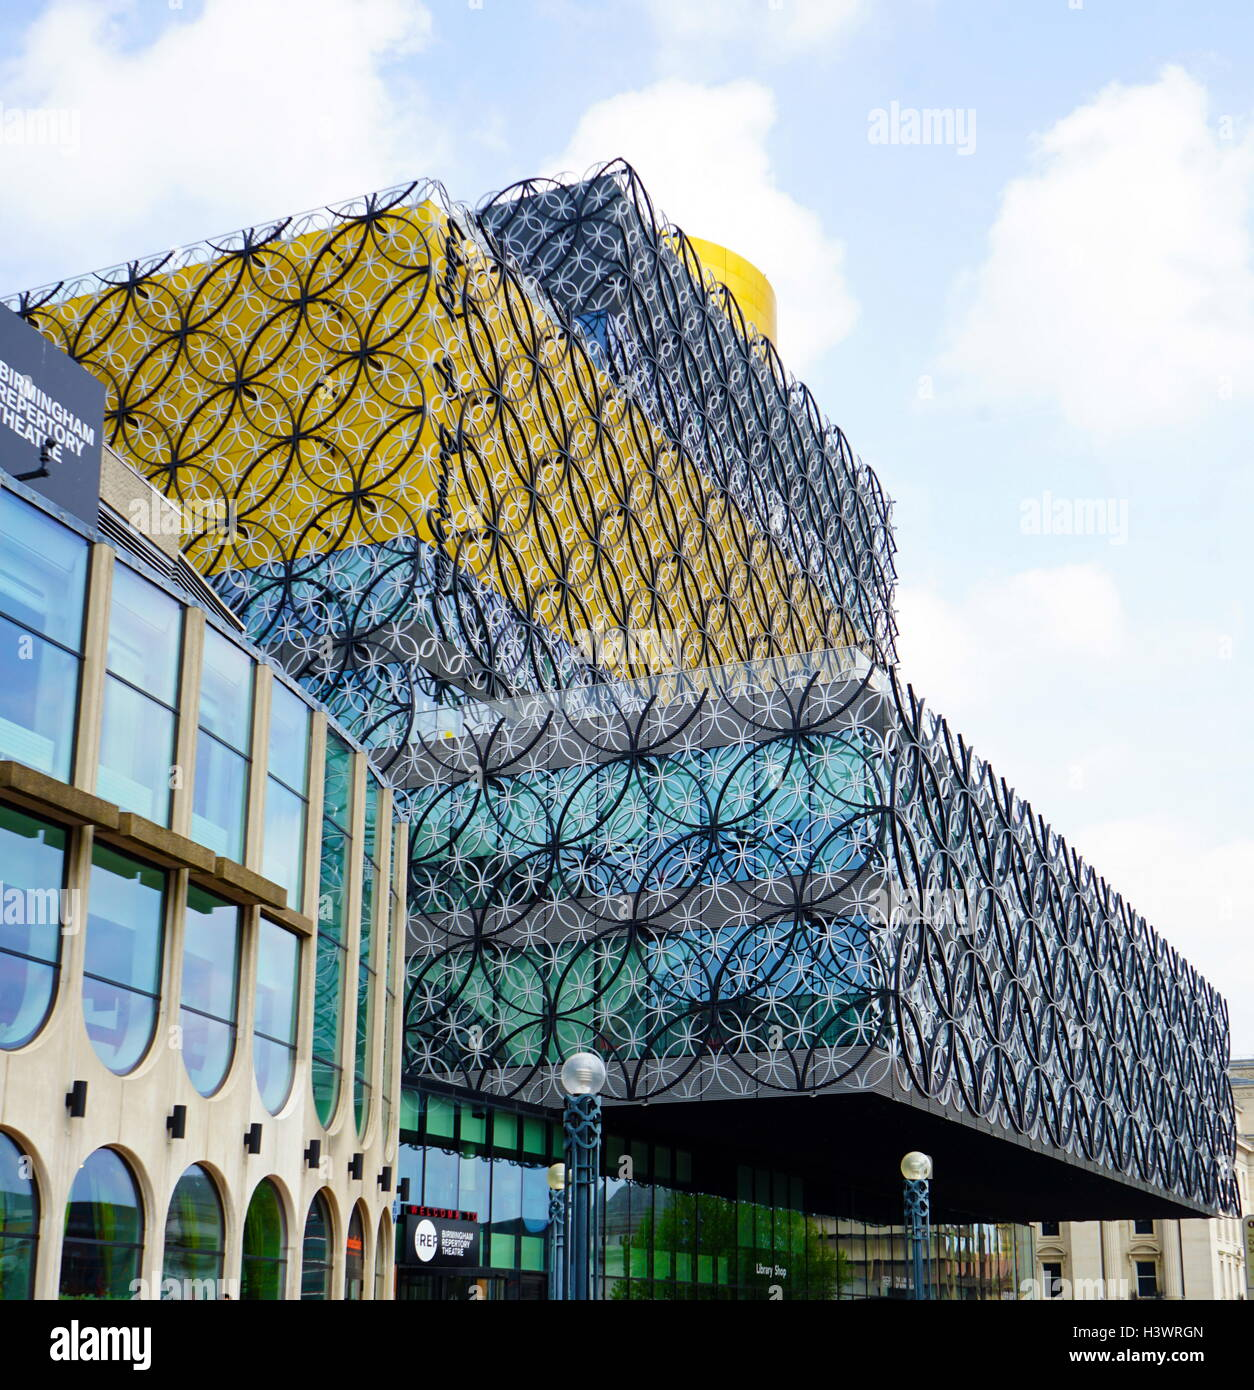 Post Modern High Tech Library Of Birmingham In England Designed By Architect Francine Houben 2013